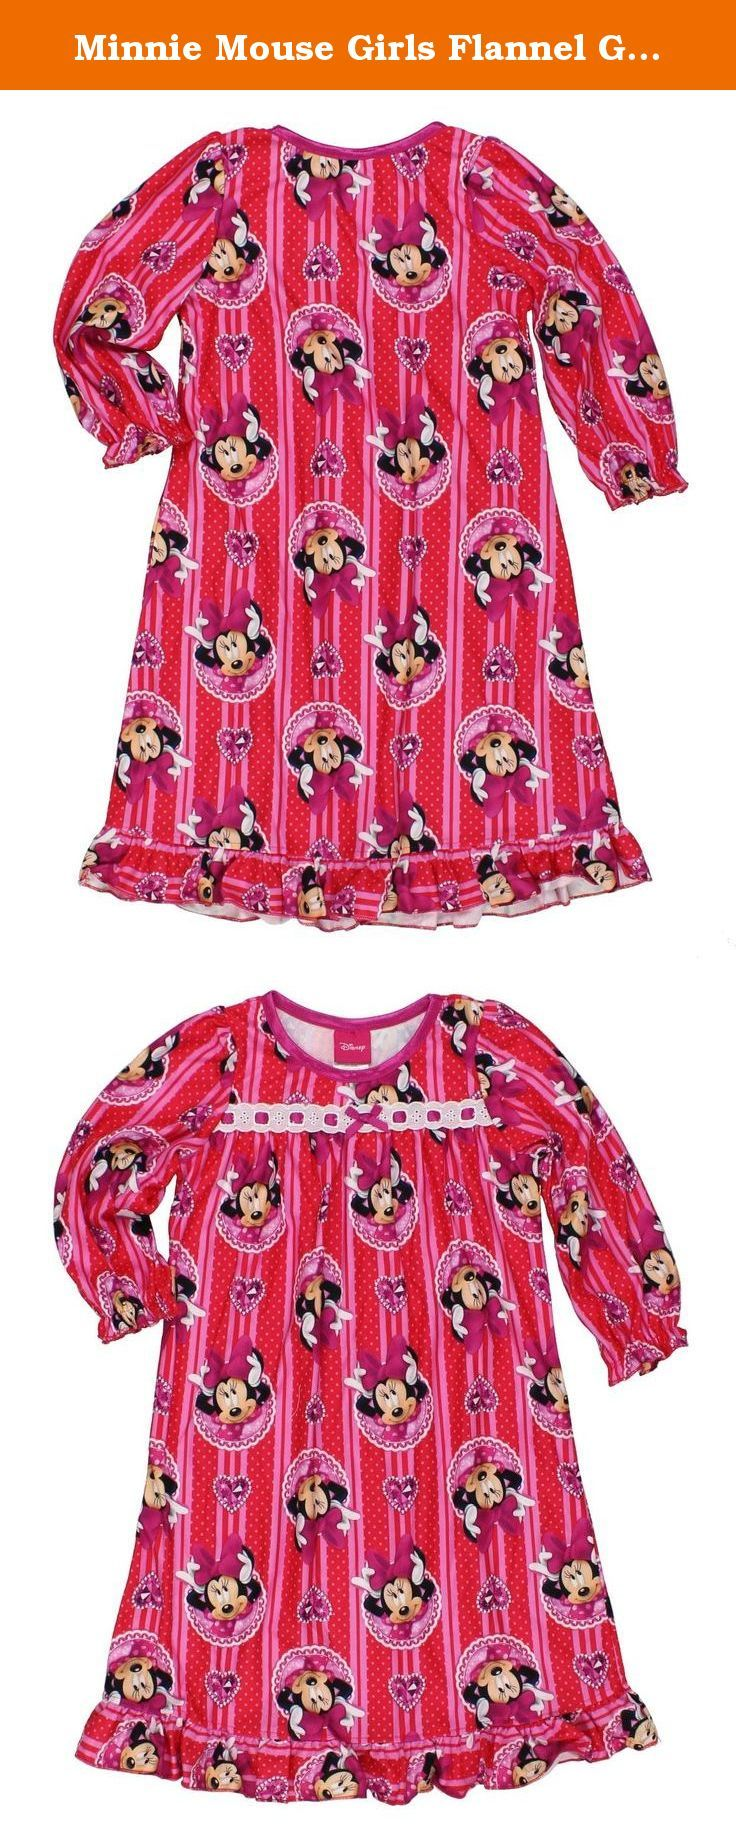 Minnie Mouse Girls Flannel Granny Gown Nightgown Pajamas (4T 6ec2d82ee